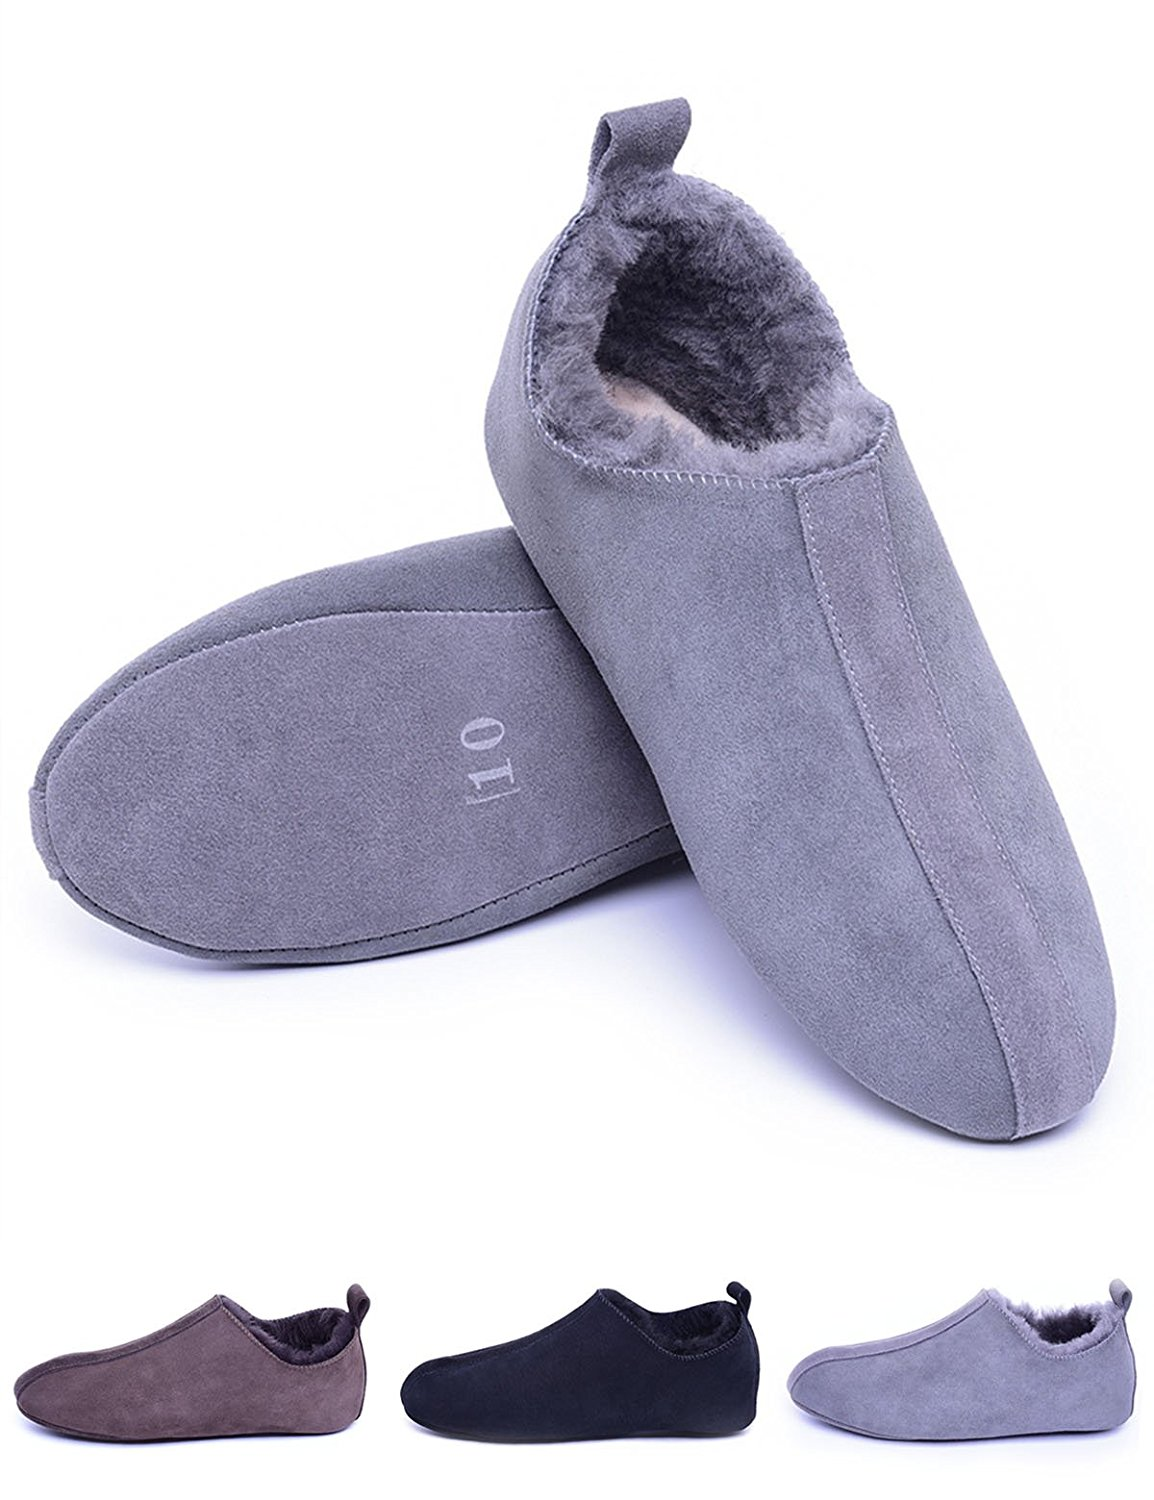 Eucoz Men Sheepskin Slippers, Shearling Lined House Slippers Indoor,Comfort Soft Leather Sole, Slip On,Unisex